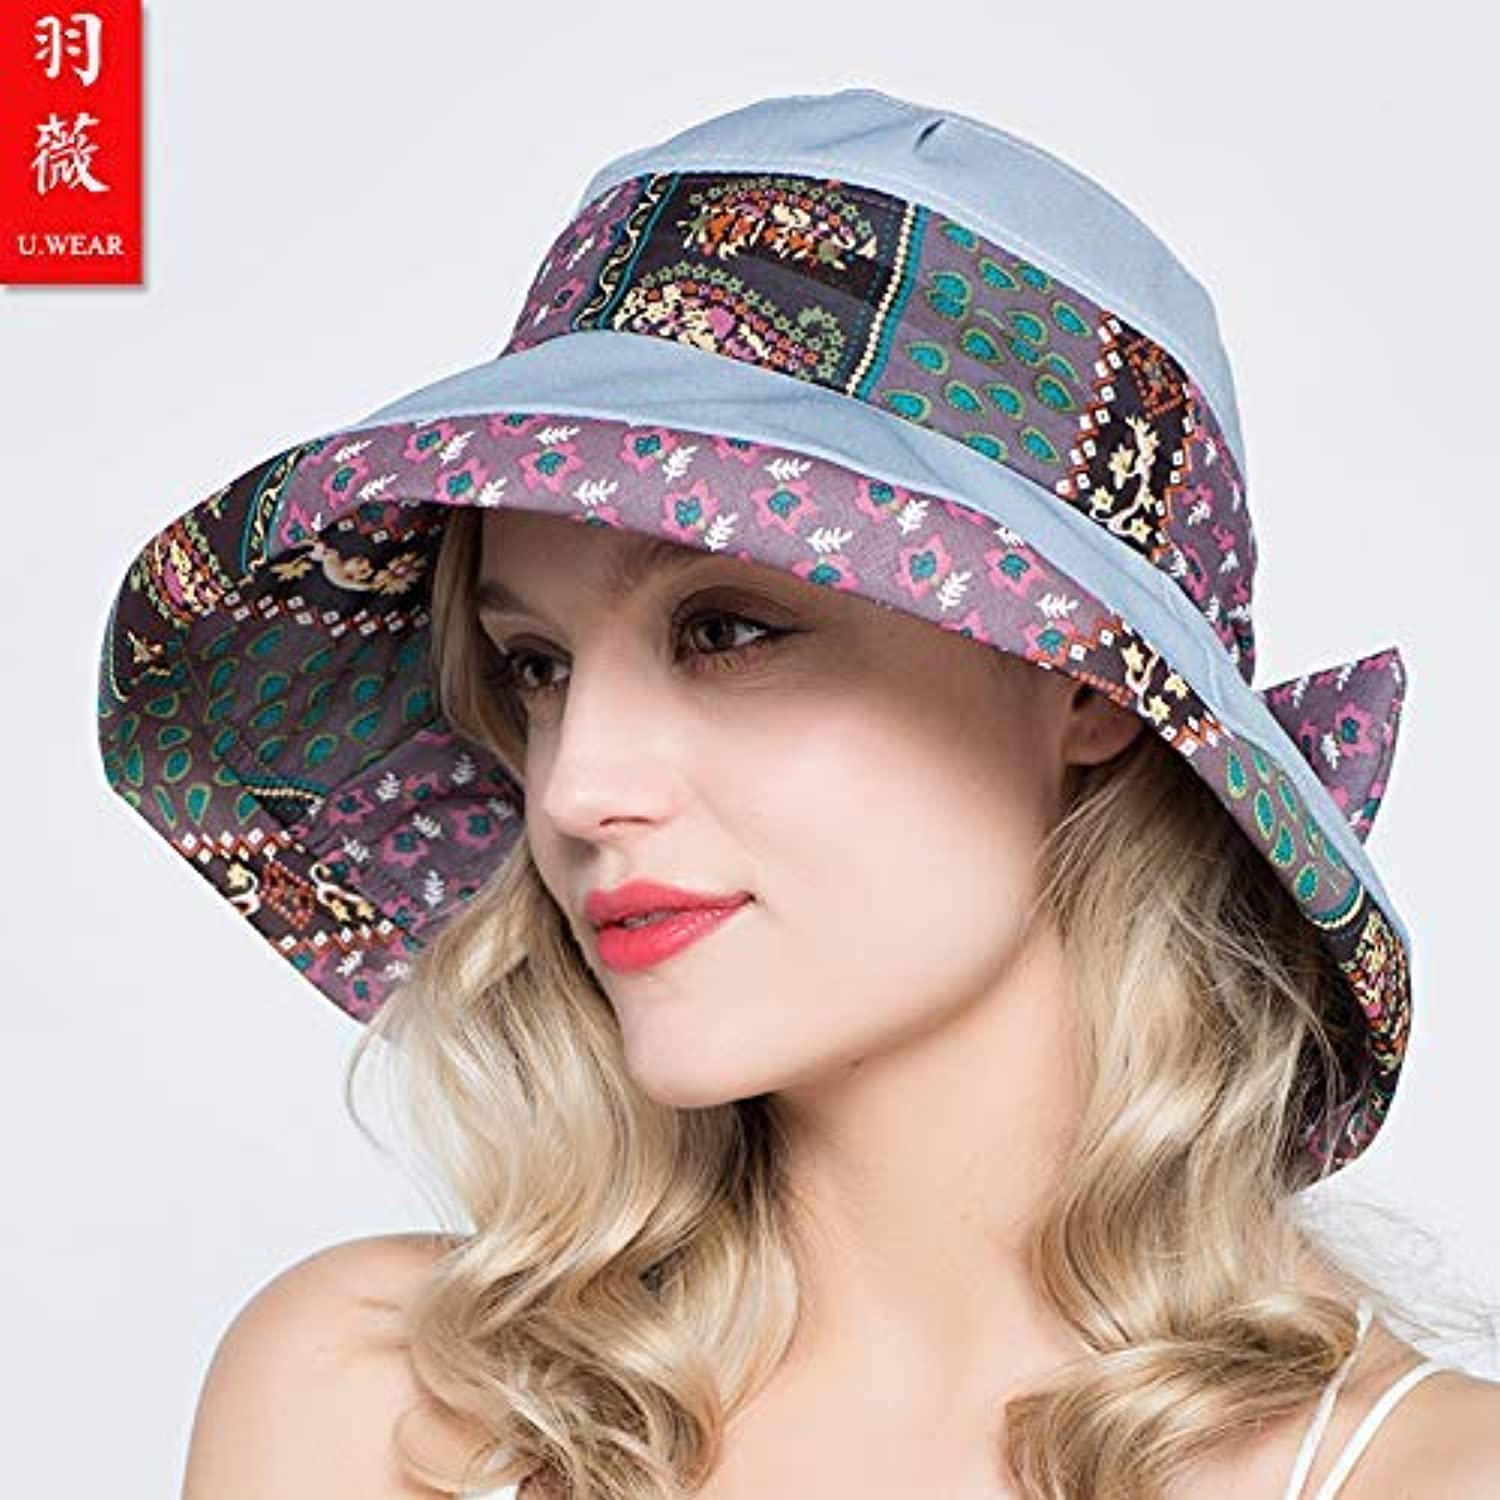 Chuiqingnet Travel travel ladies sun hat sun hat summer cool hat sun hat printing sun hat adjustable